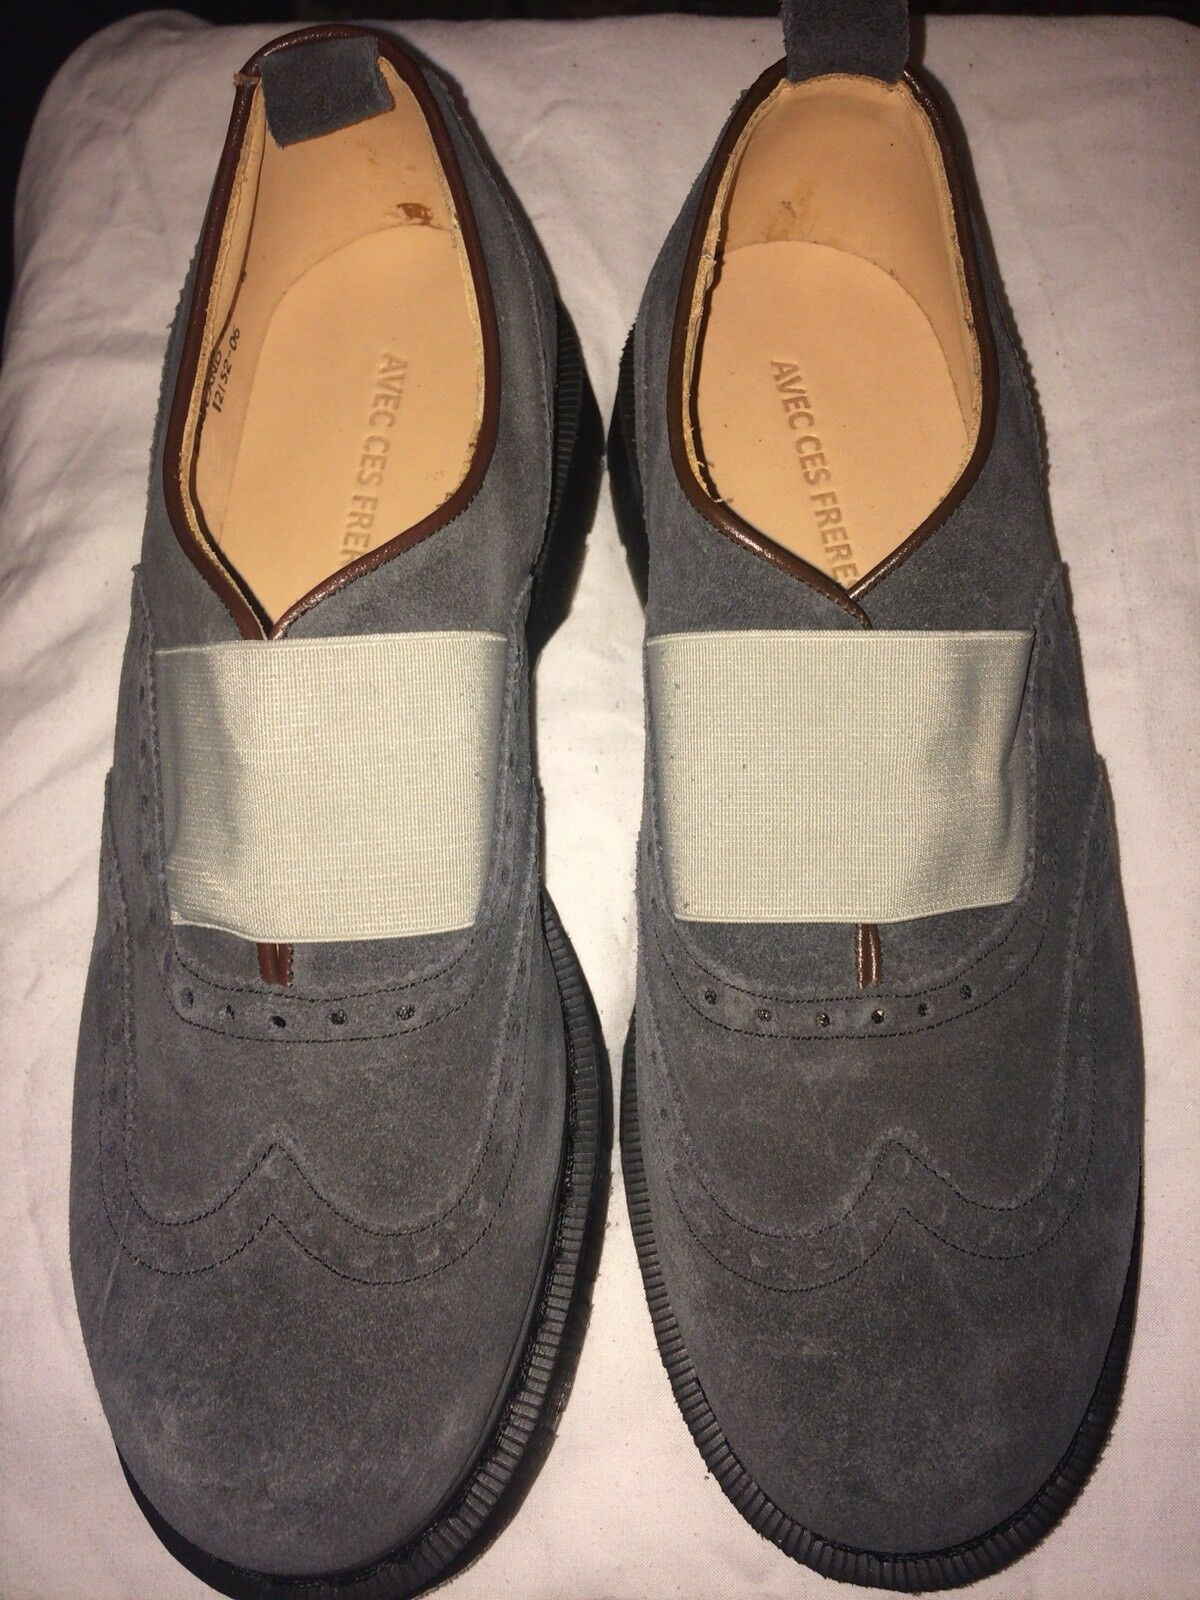 Men's Brand New Solovair leather shoes size 9